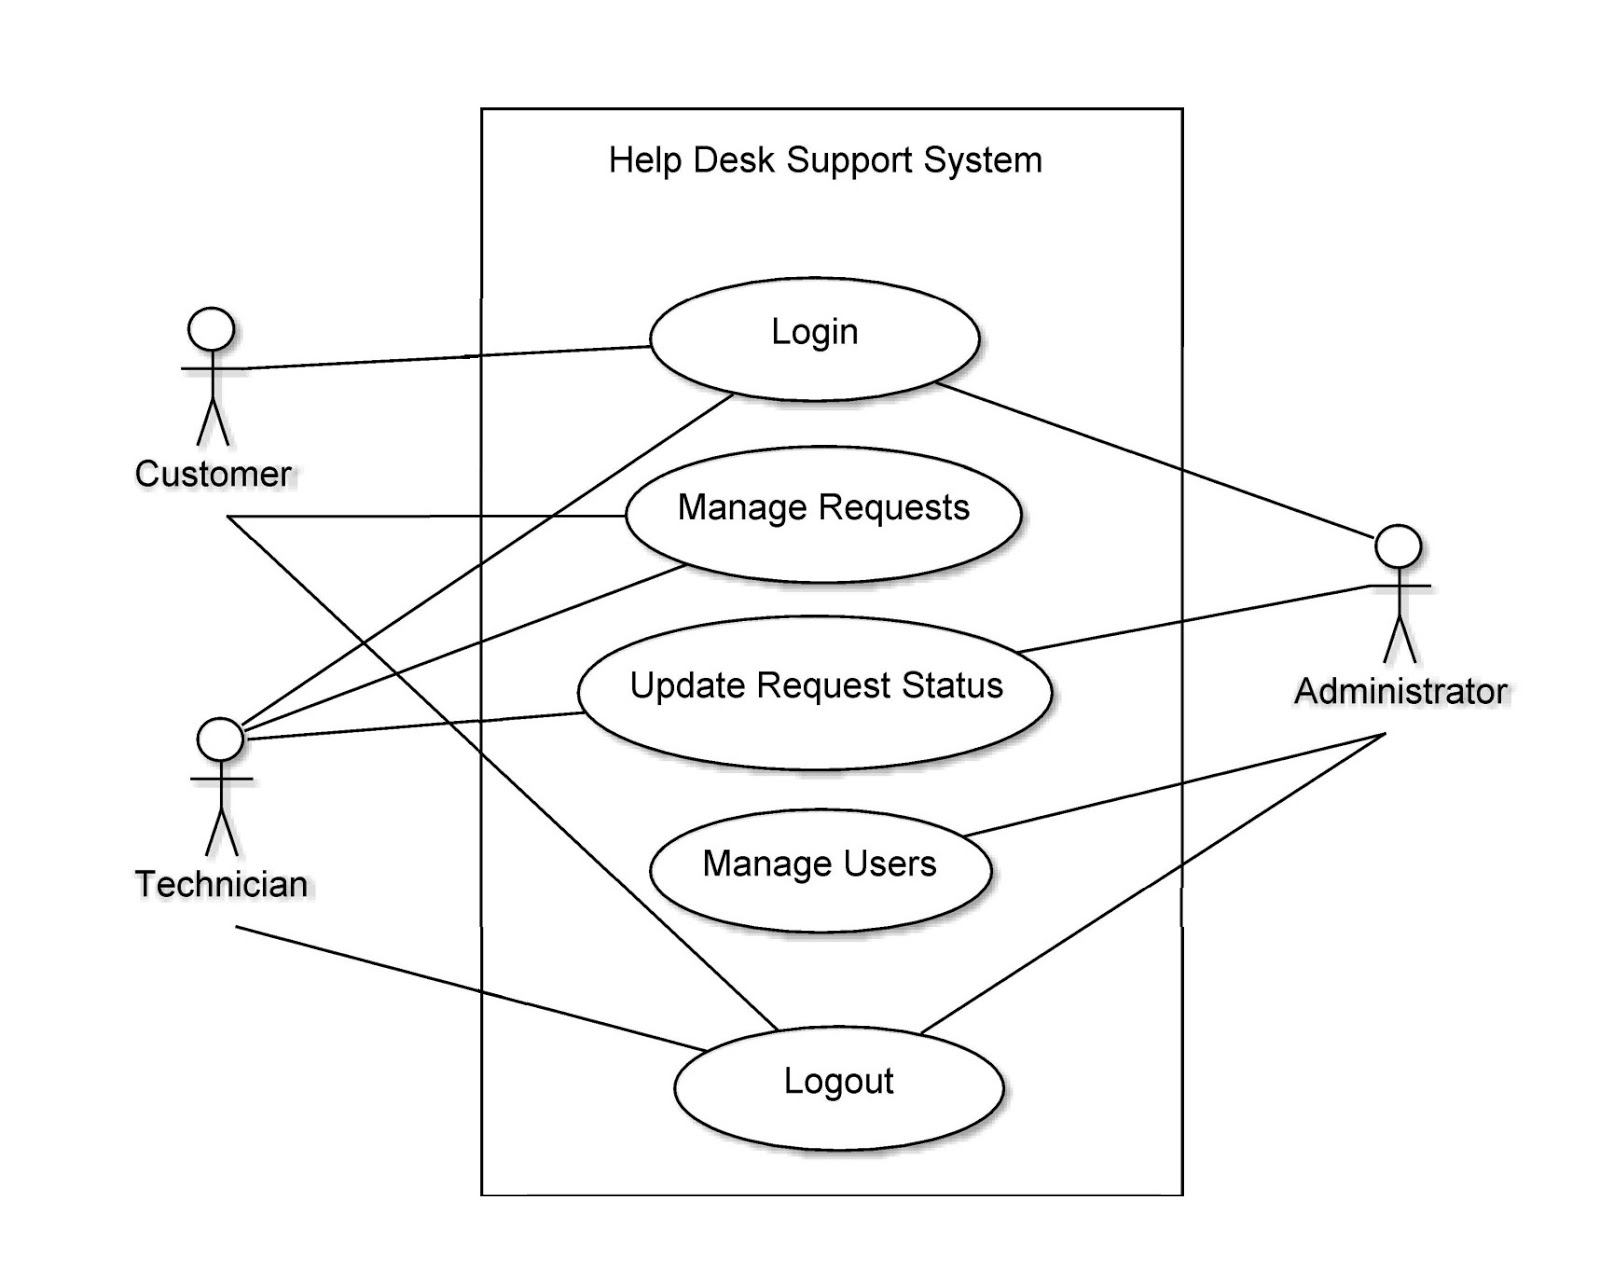 Computer science assignments help desk support system use case diagram use case diagram ccuart Images